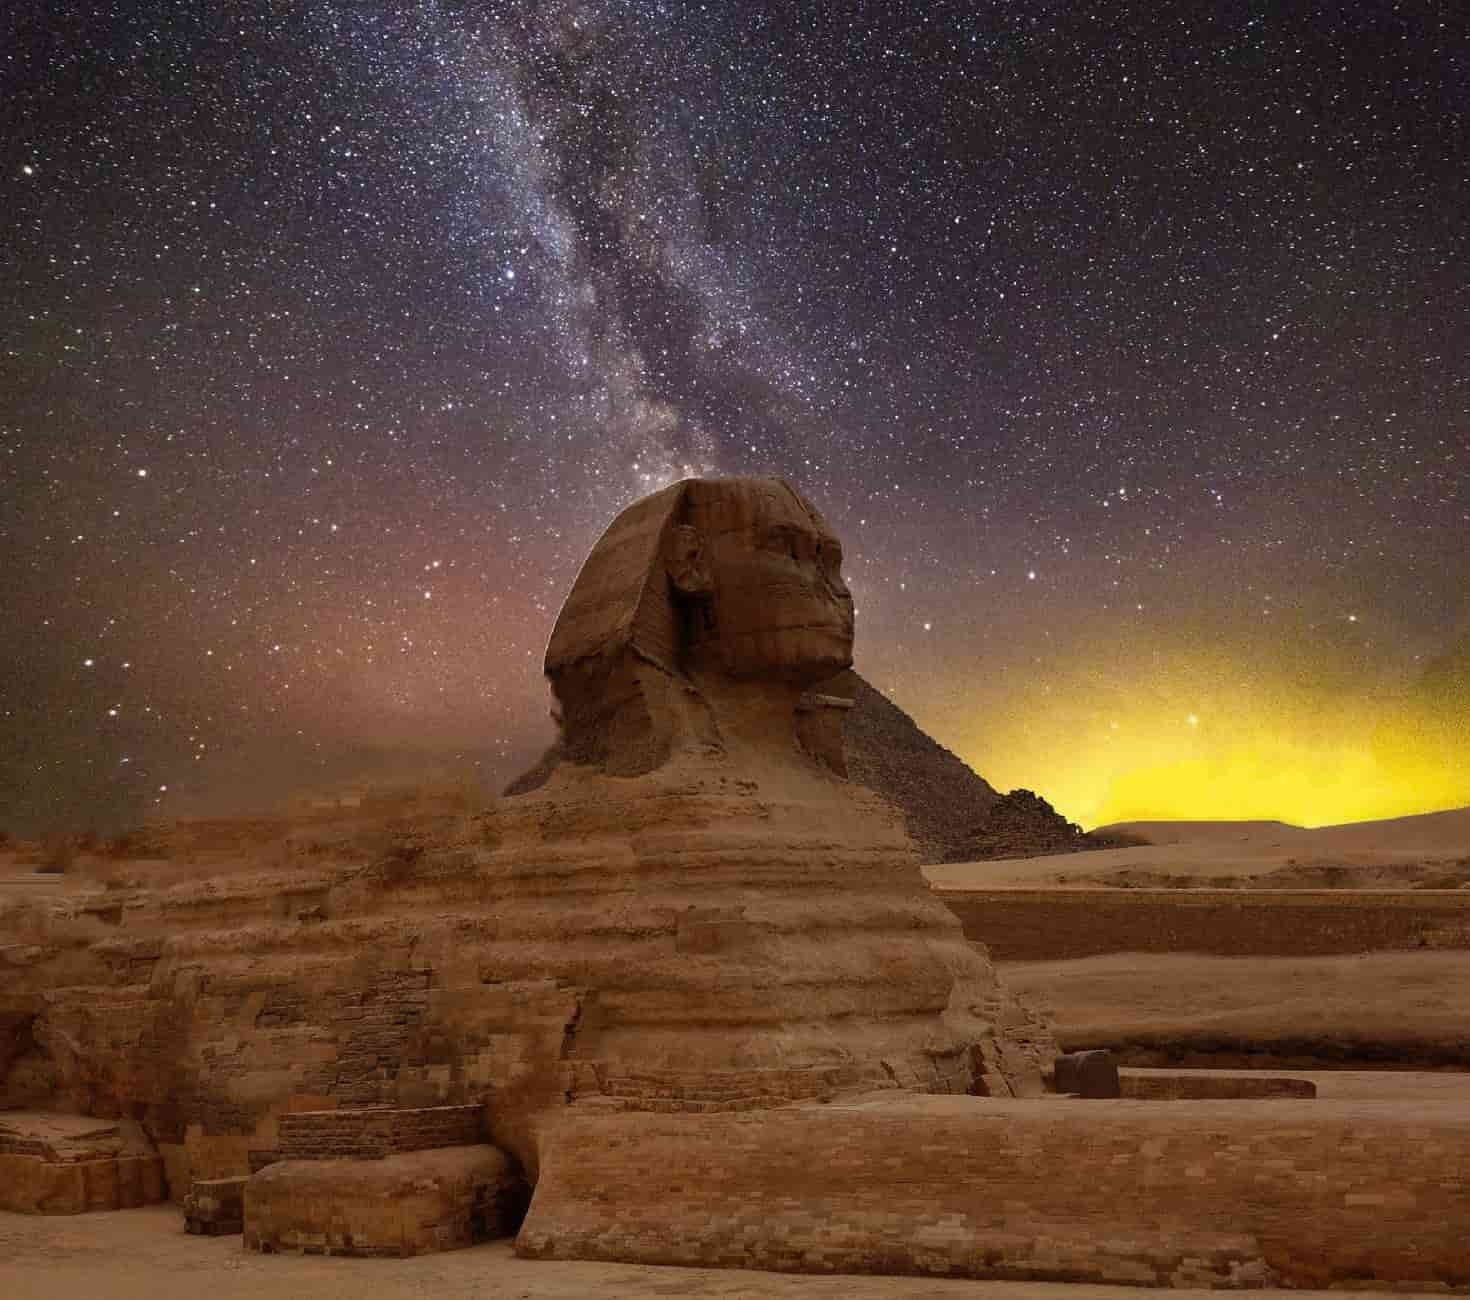 Ancient Egyptians were the first people to identify constellations.